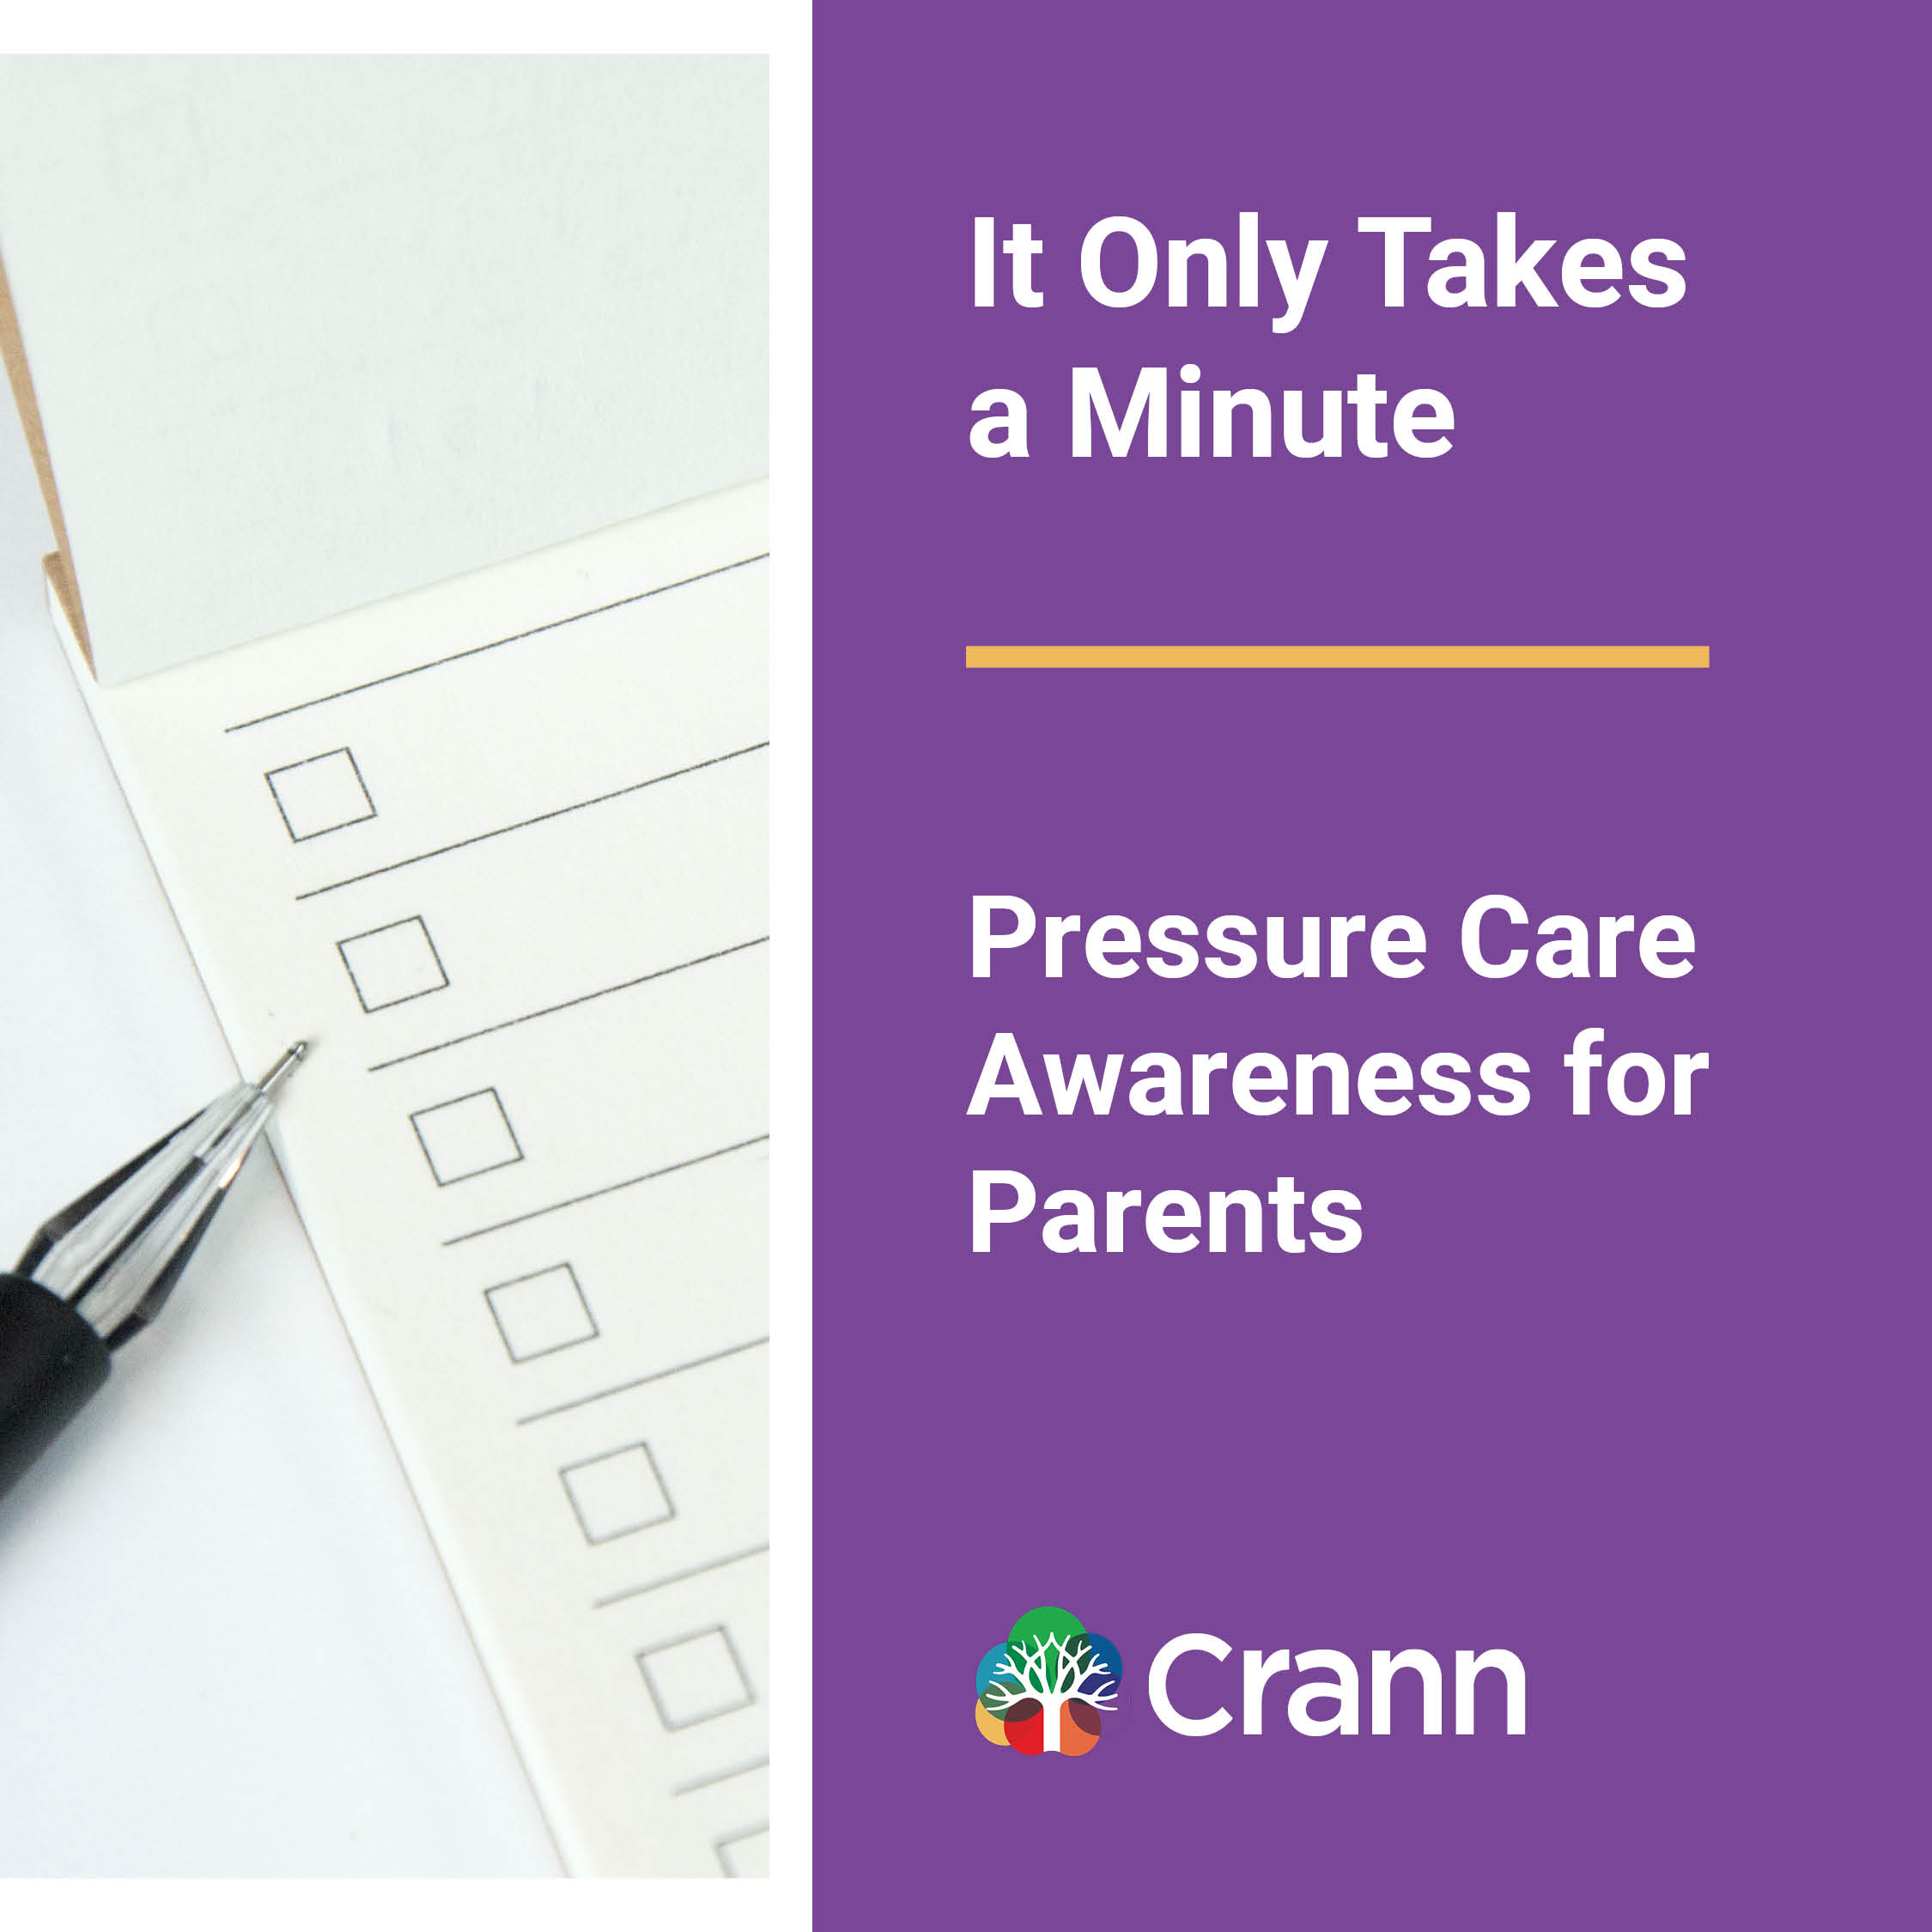 it only takes a minute banner image - text on purple background next to image of a pen and paper check list